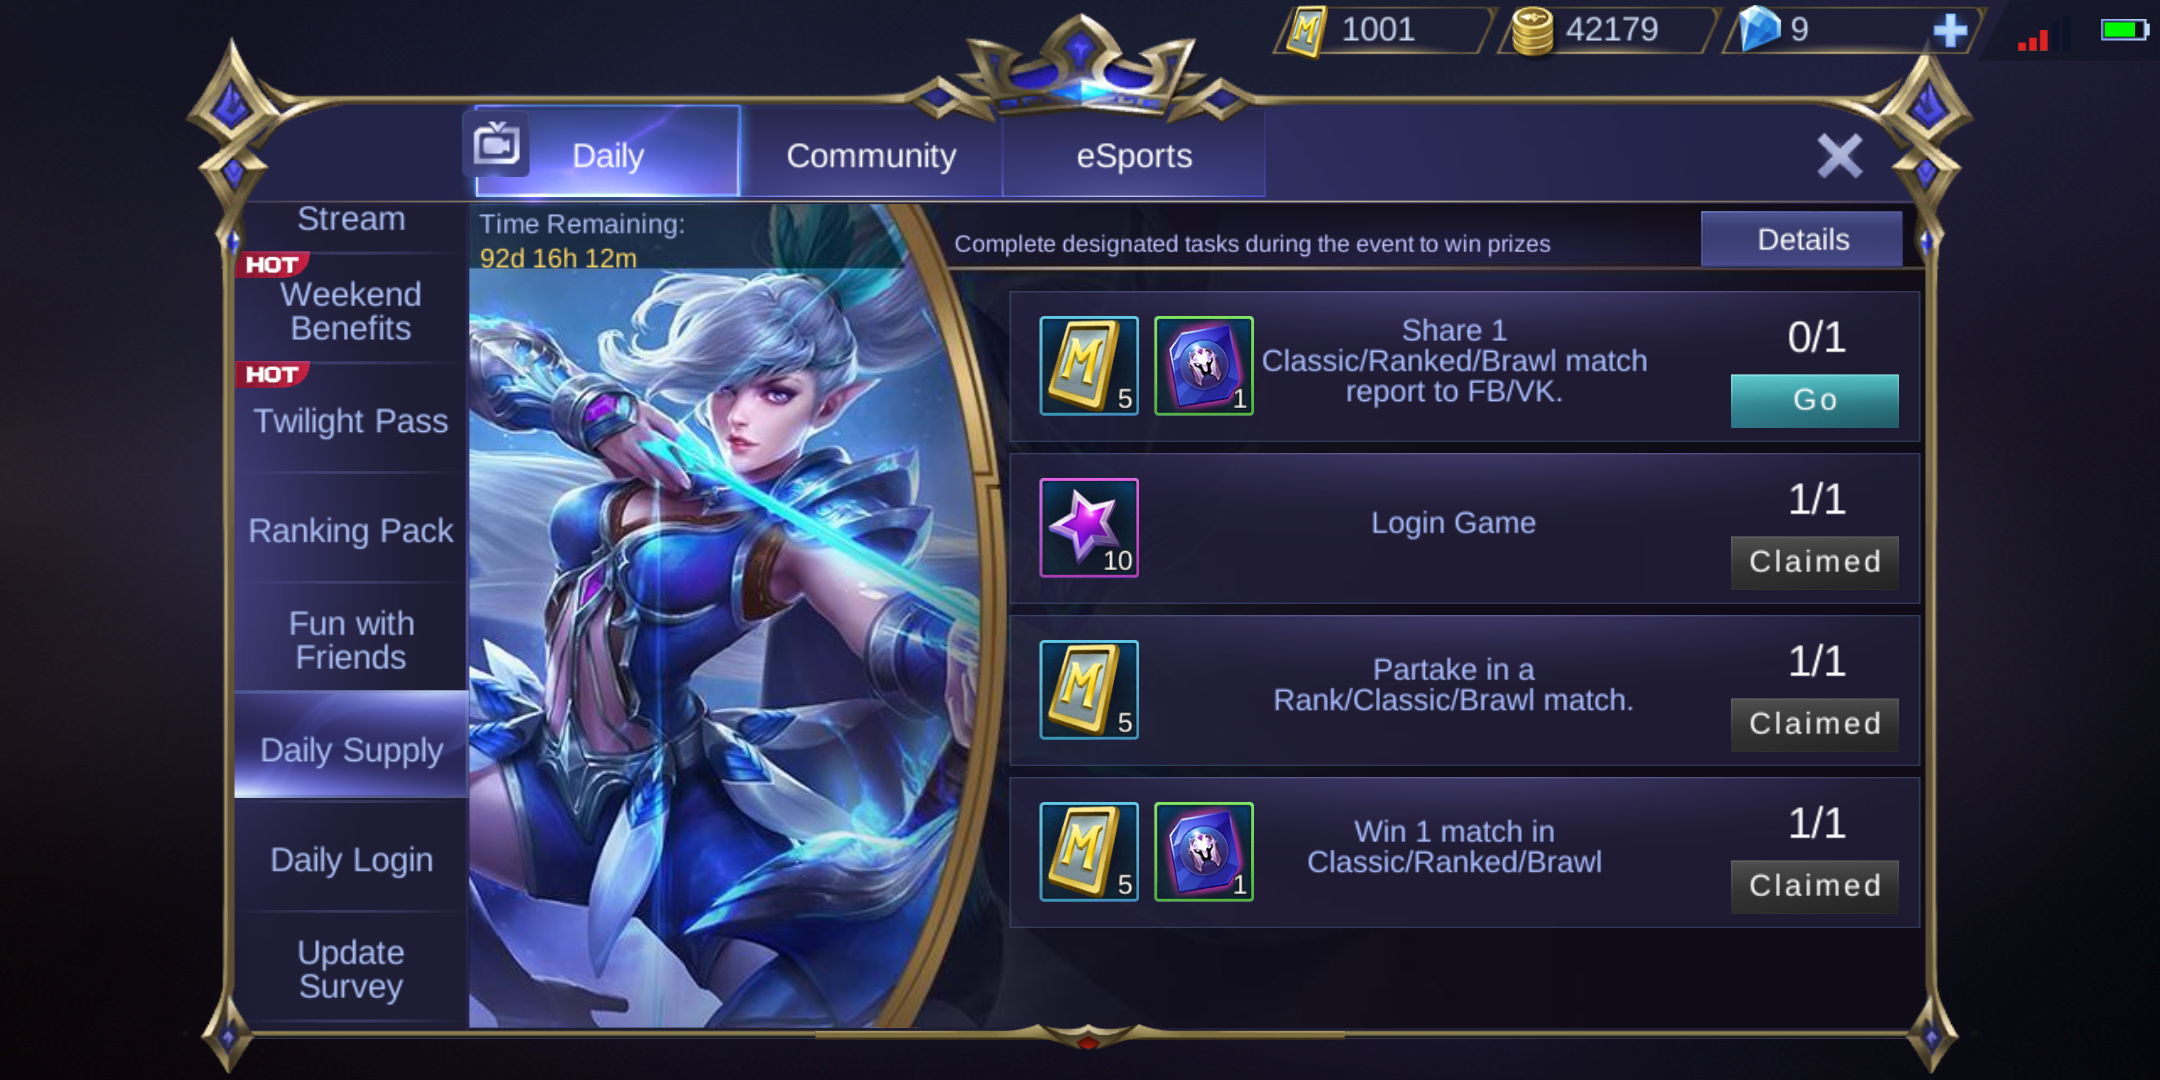 Screenshot_2019-09-29-21-18-31-858_com.mobile.legends.png